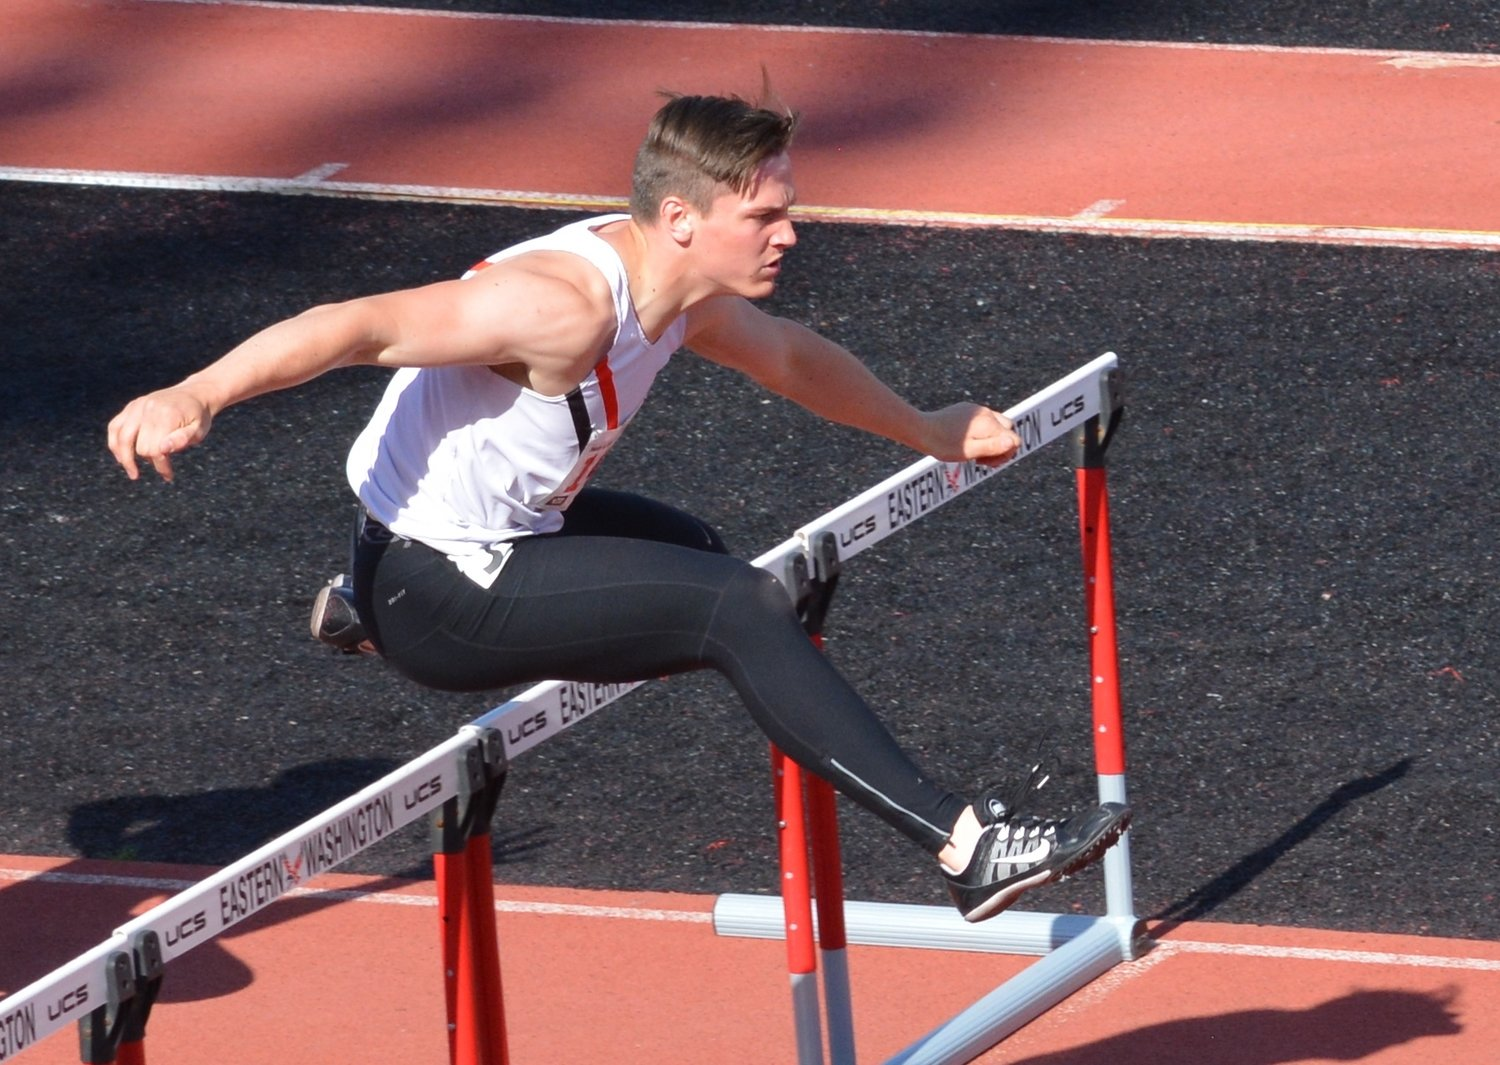 Dylan Tracer clears a hurdle. He competed in both men's hurdle events.